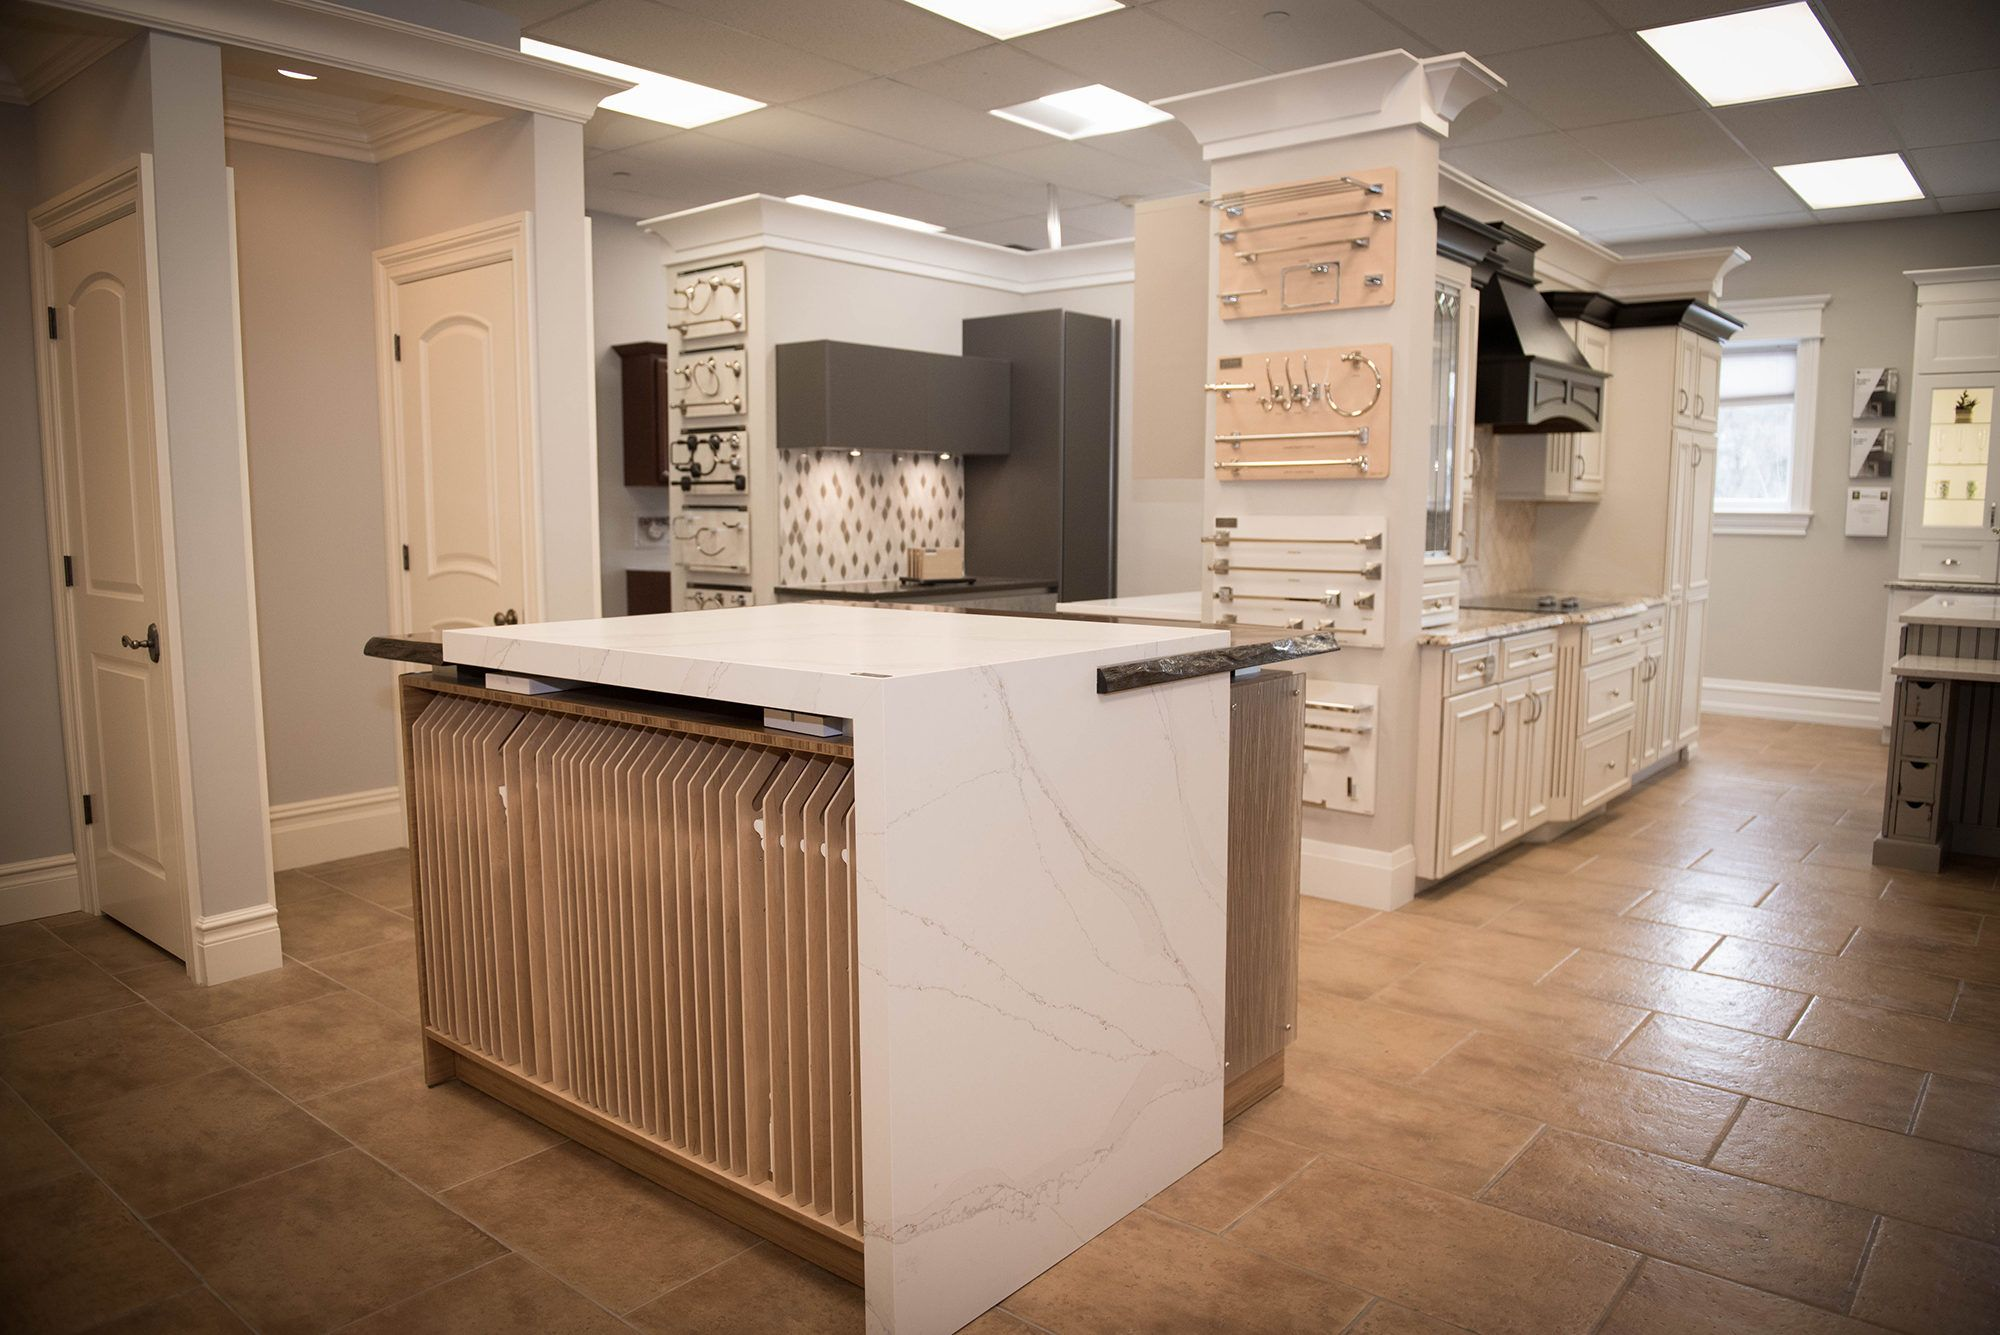 Kitchen Design Center Google Search Kitchen Design Centre Kitchen Design Kitchen